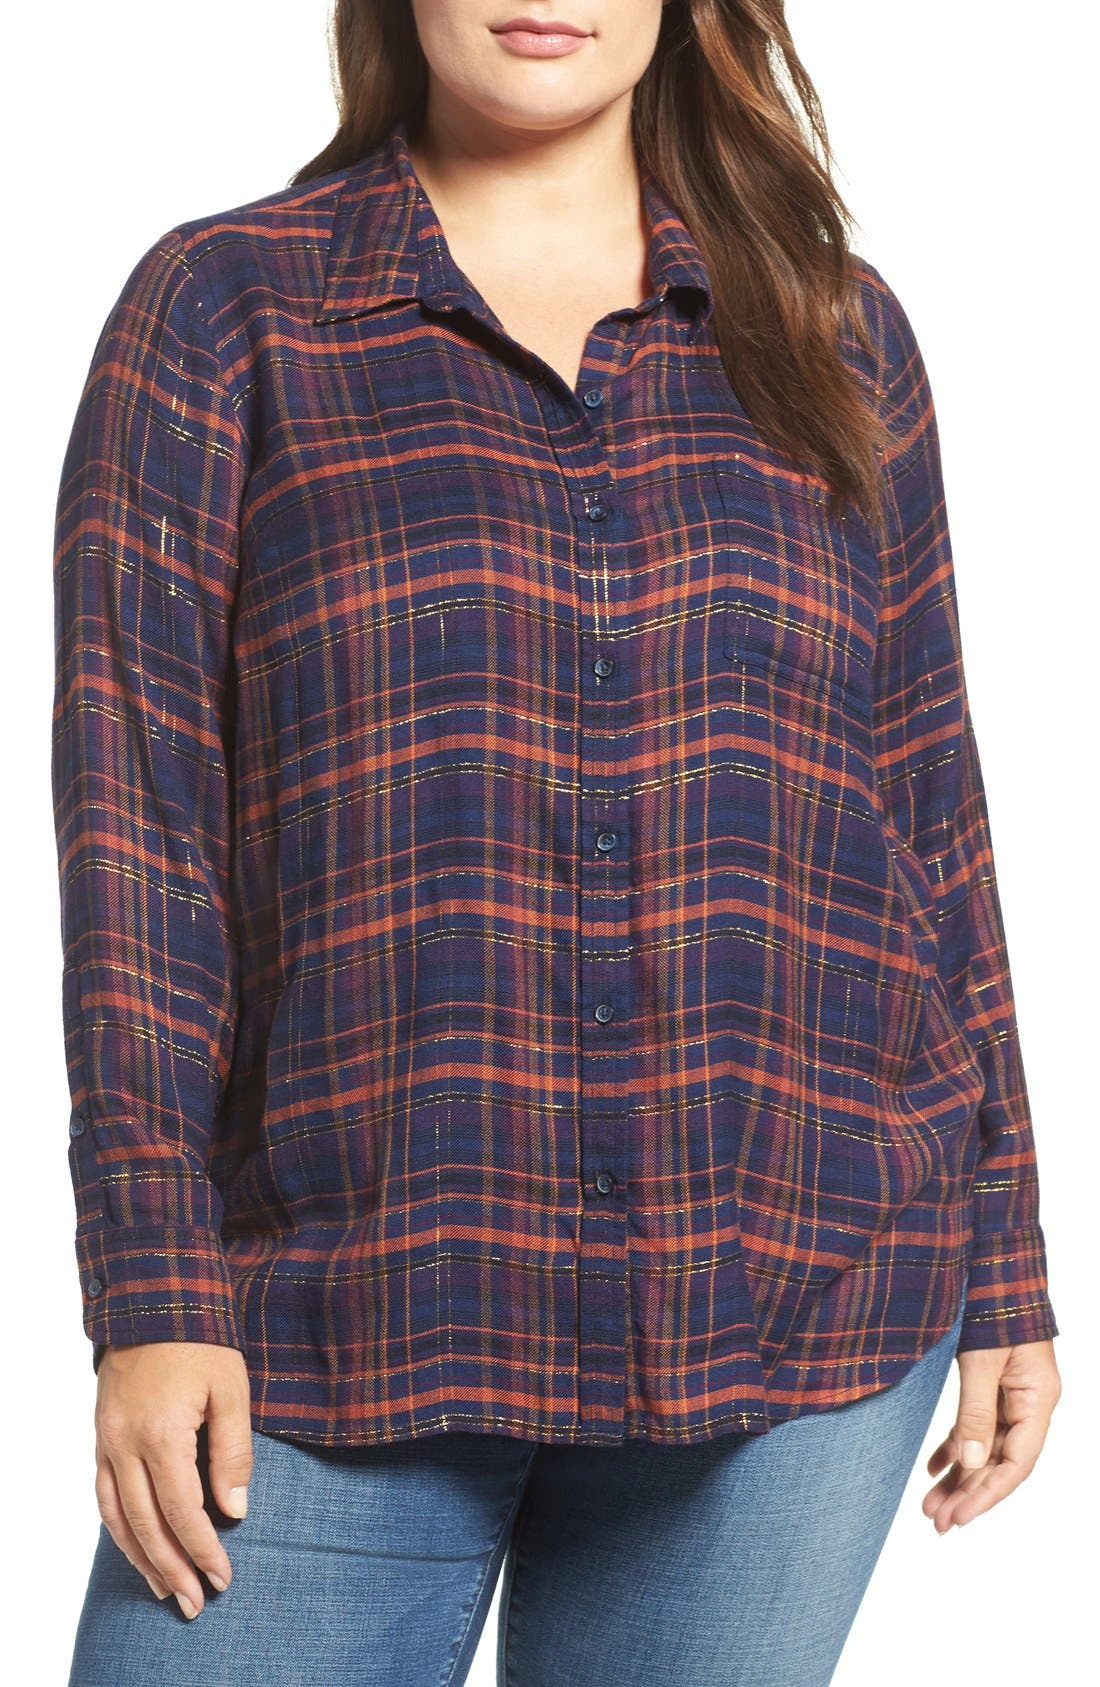 Back Overlay Plaid Shirt,                         Main,                         color, Blue Multi